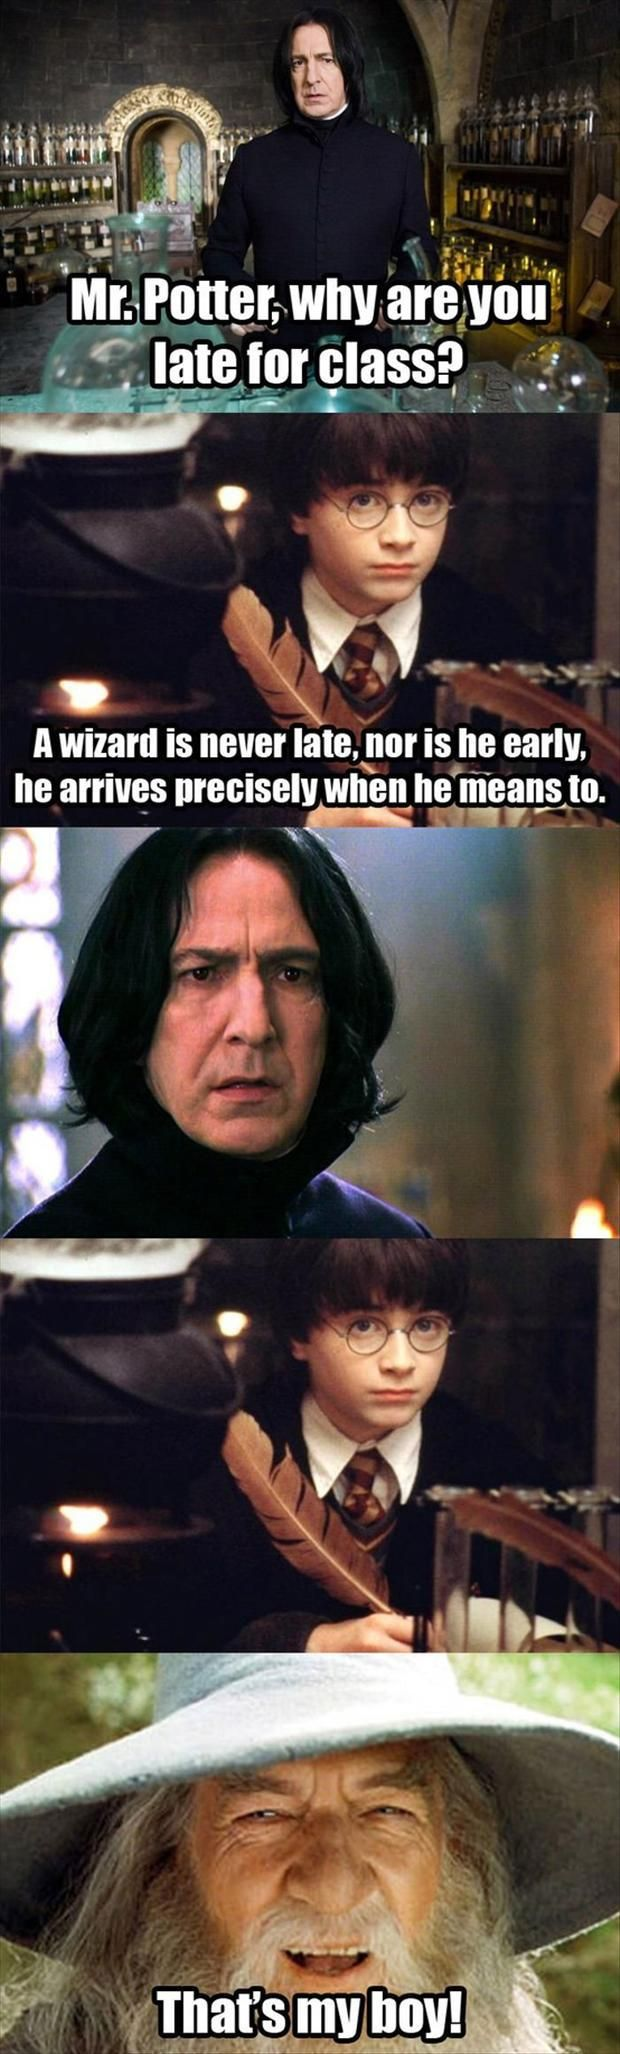 Funny Harry Potter Quotes Adorable A Wizard Is Never Late Nor Is He Early Funny Harry Potter Quotes